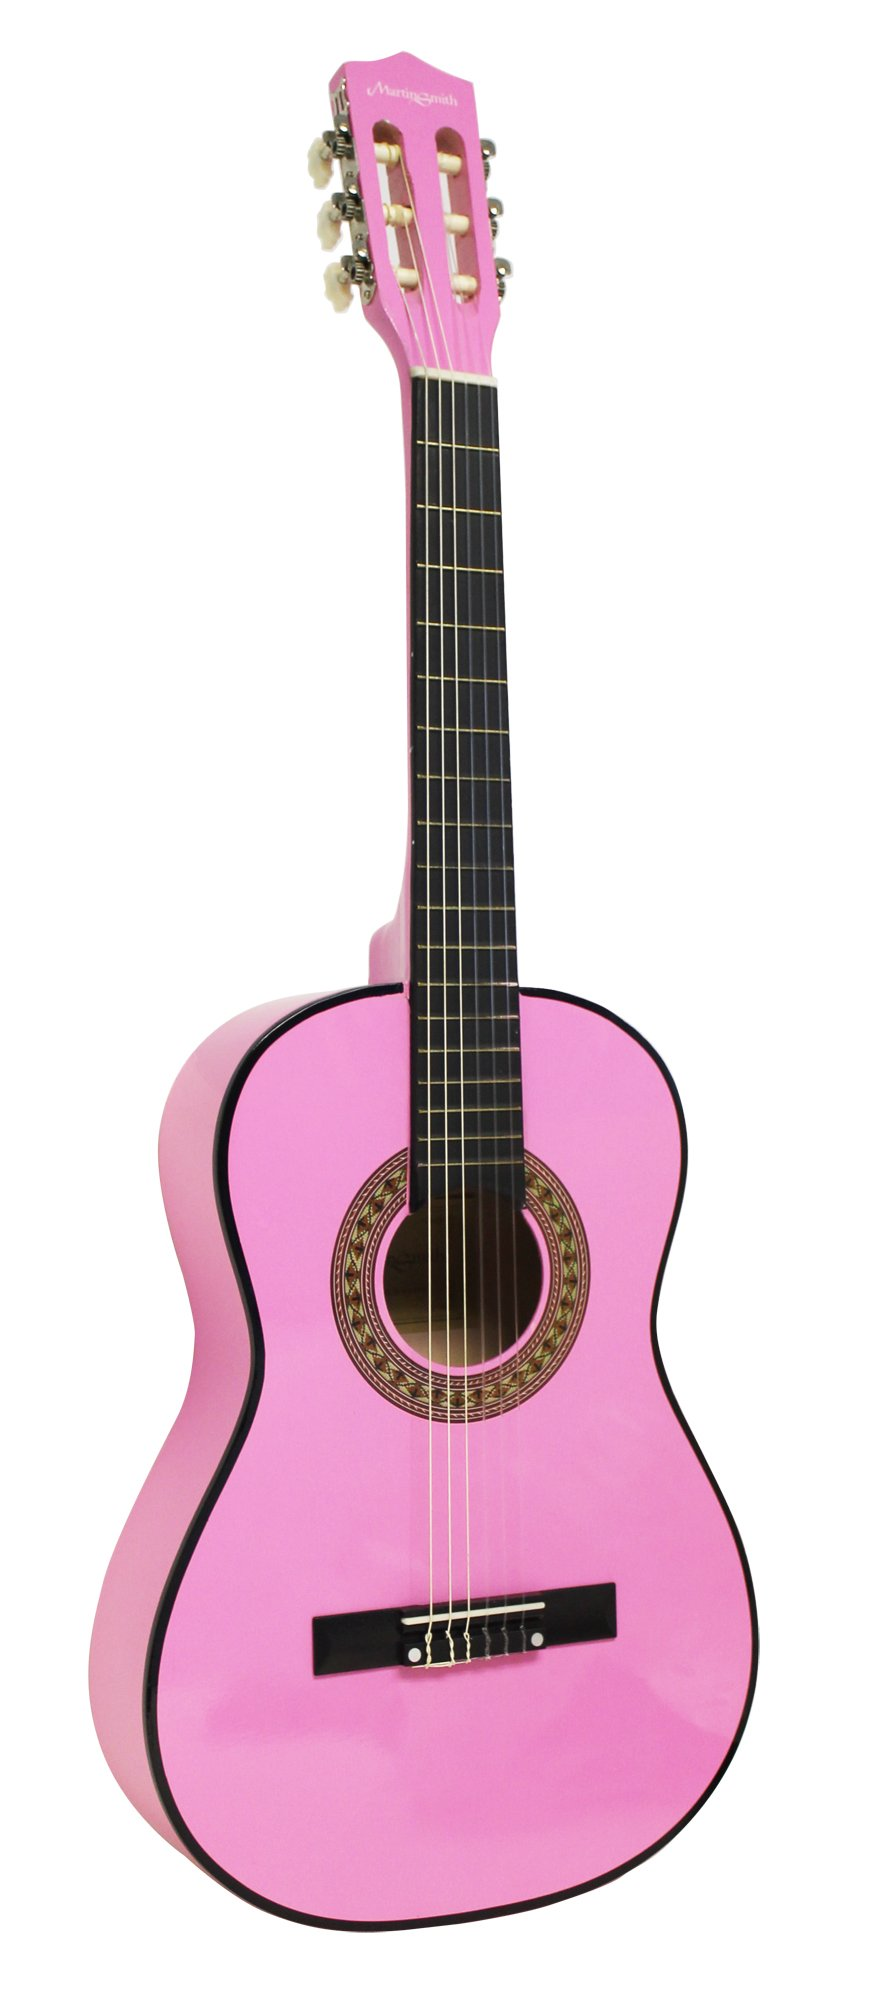 Martin Smith 6 String Classical Guitar 3/4 Size 36 inches for Children, Pink (W-560-PNK)